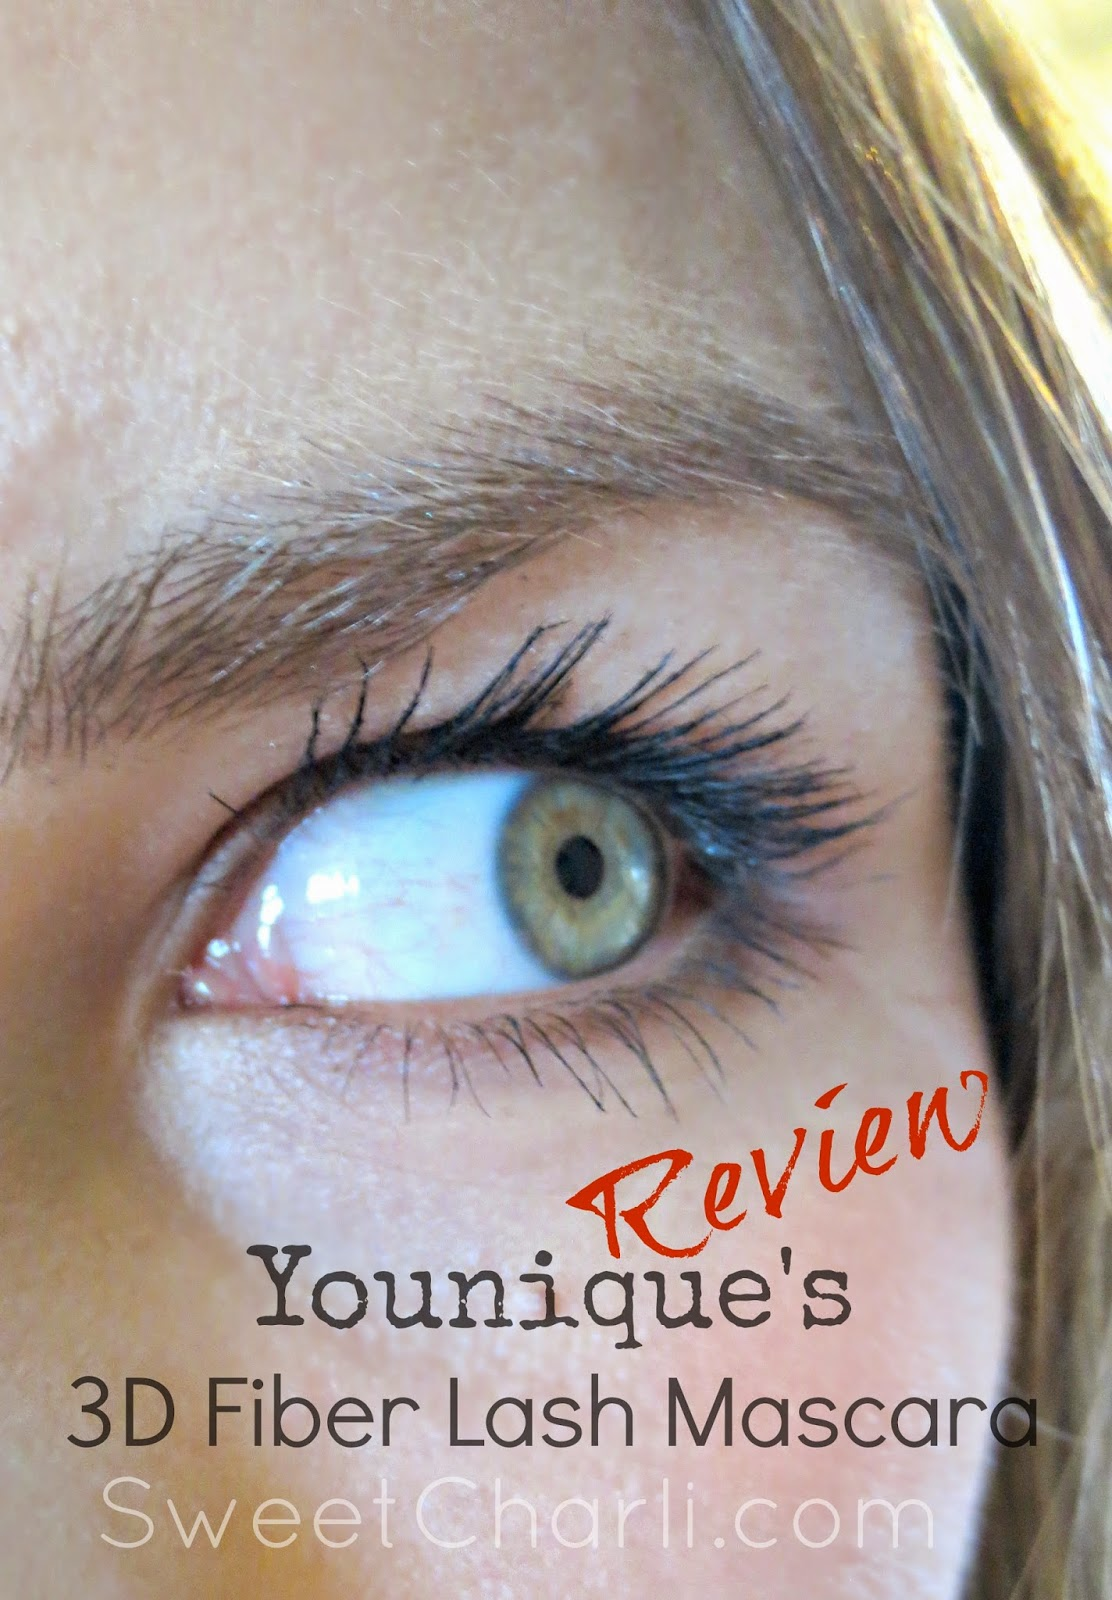 c7e3fe7731a Younique's 3D Fiber Lash Mascara is $29 plus tax and shipping. If you would  like to try it for yourself click HERE.